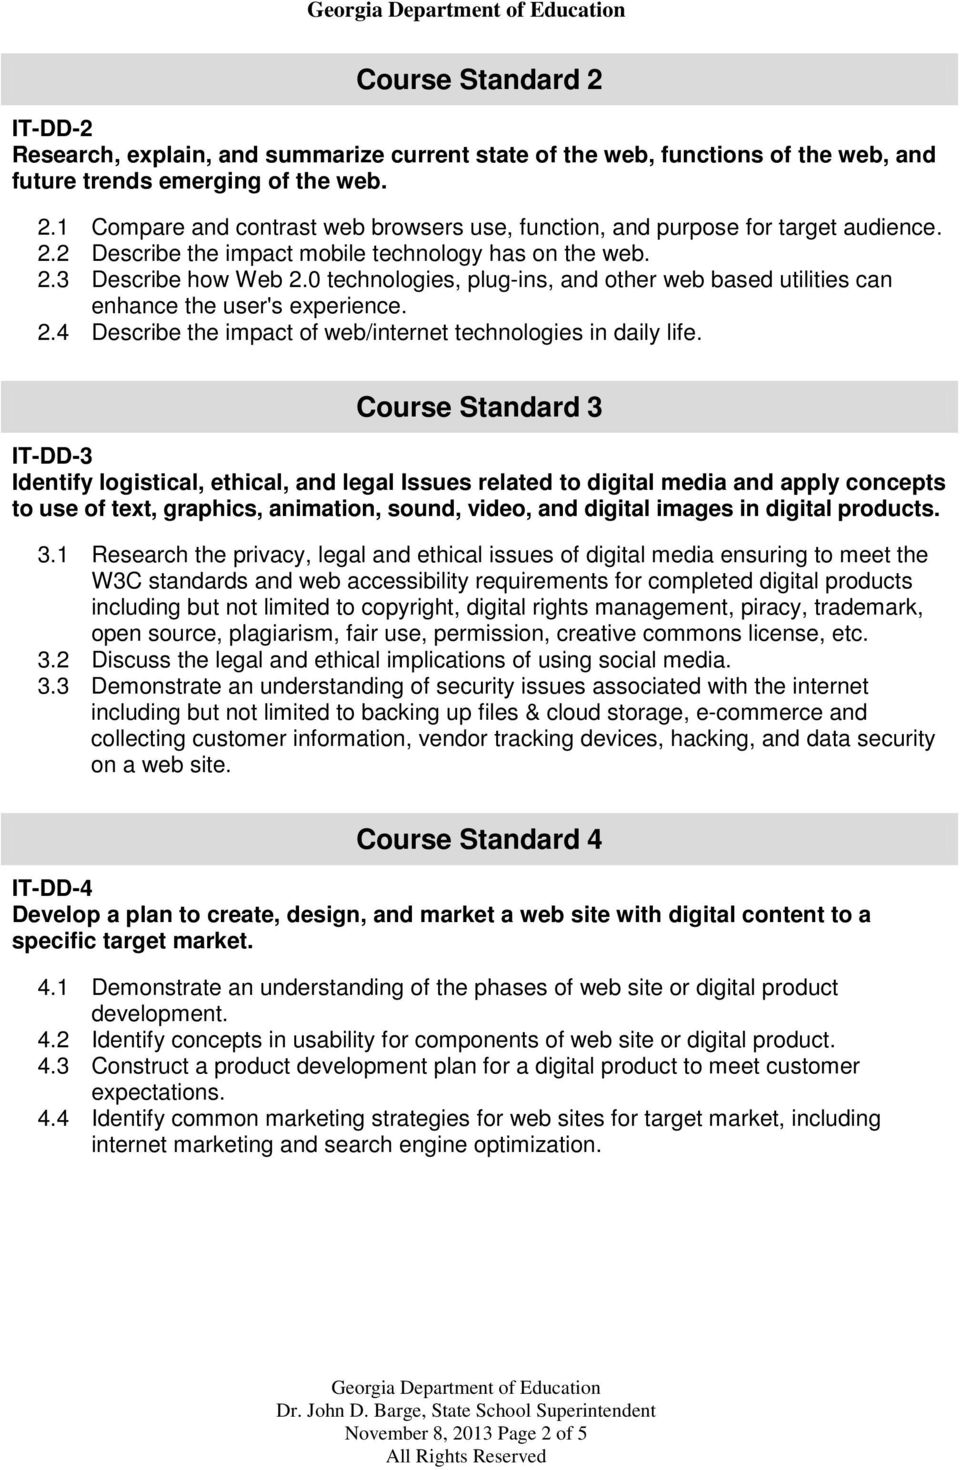 Course Standard 3 IT-DD-3 Identify logistical, ethical, and legal Issues related to digital media and apply concepts to use of text, graphics, animation, sound, video, and digital images in digital